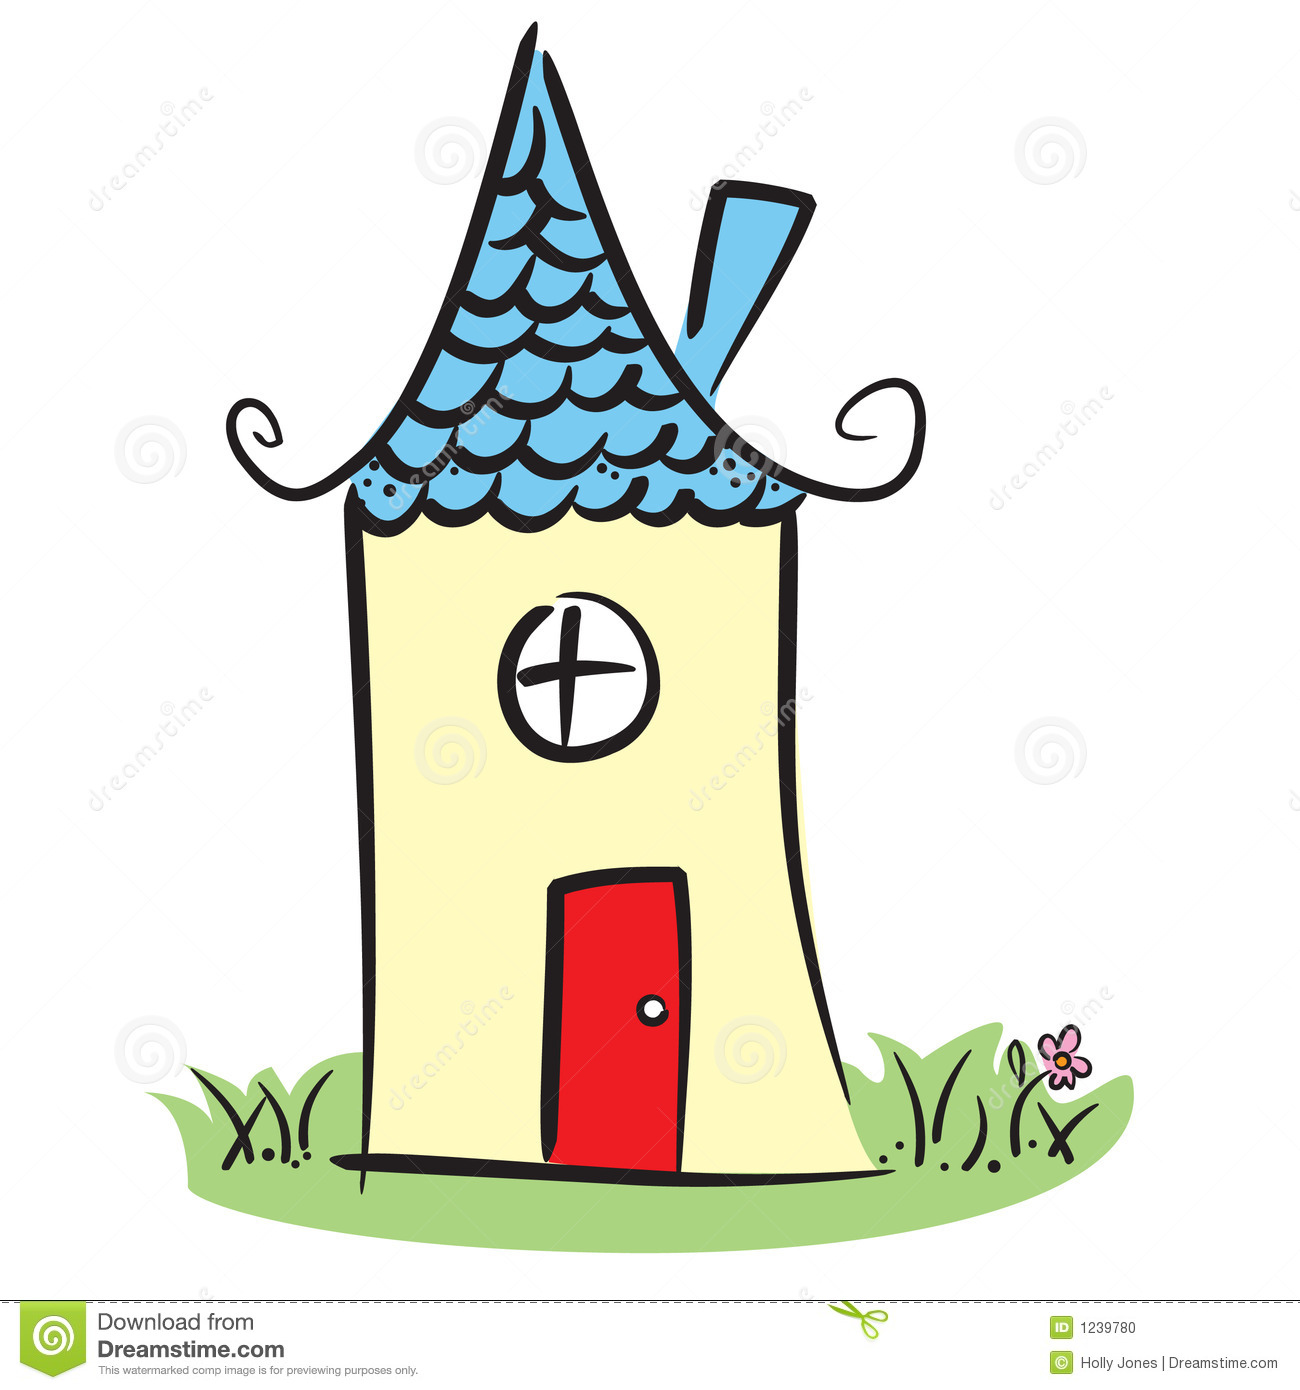 Cute house clip art clipart panda free clipart images for Cute house images